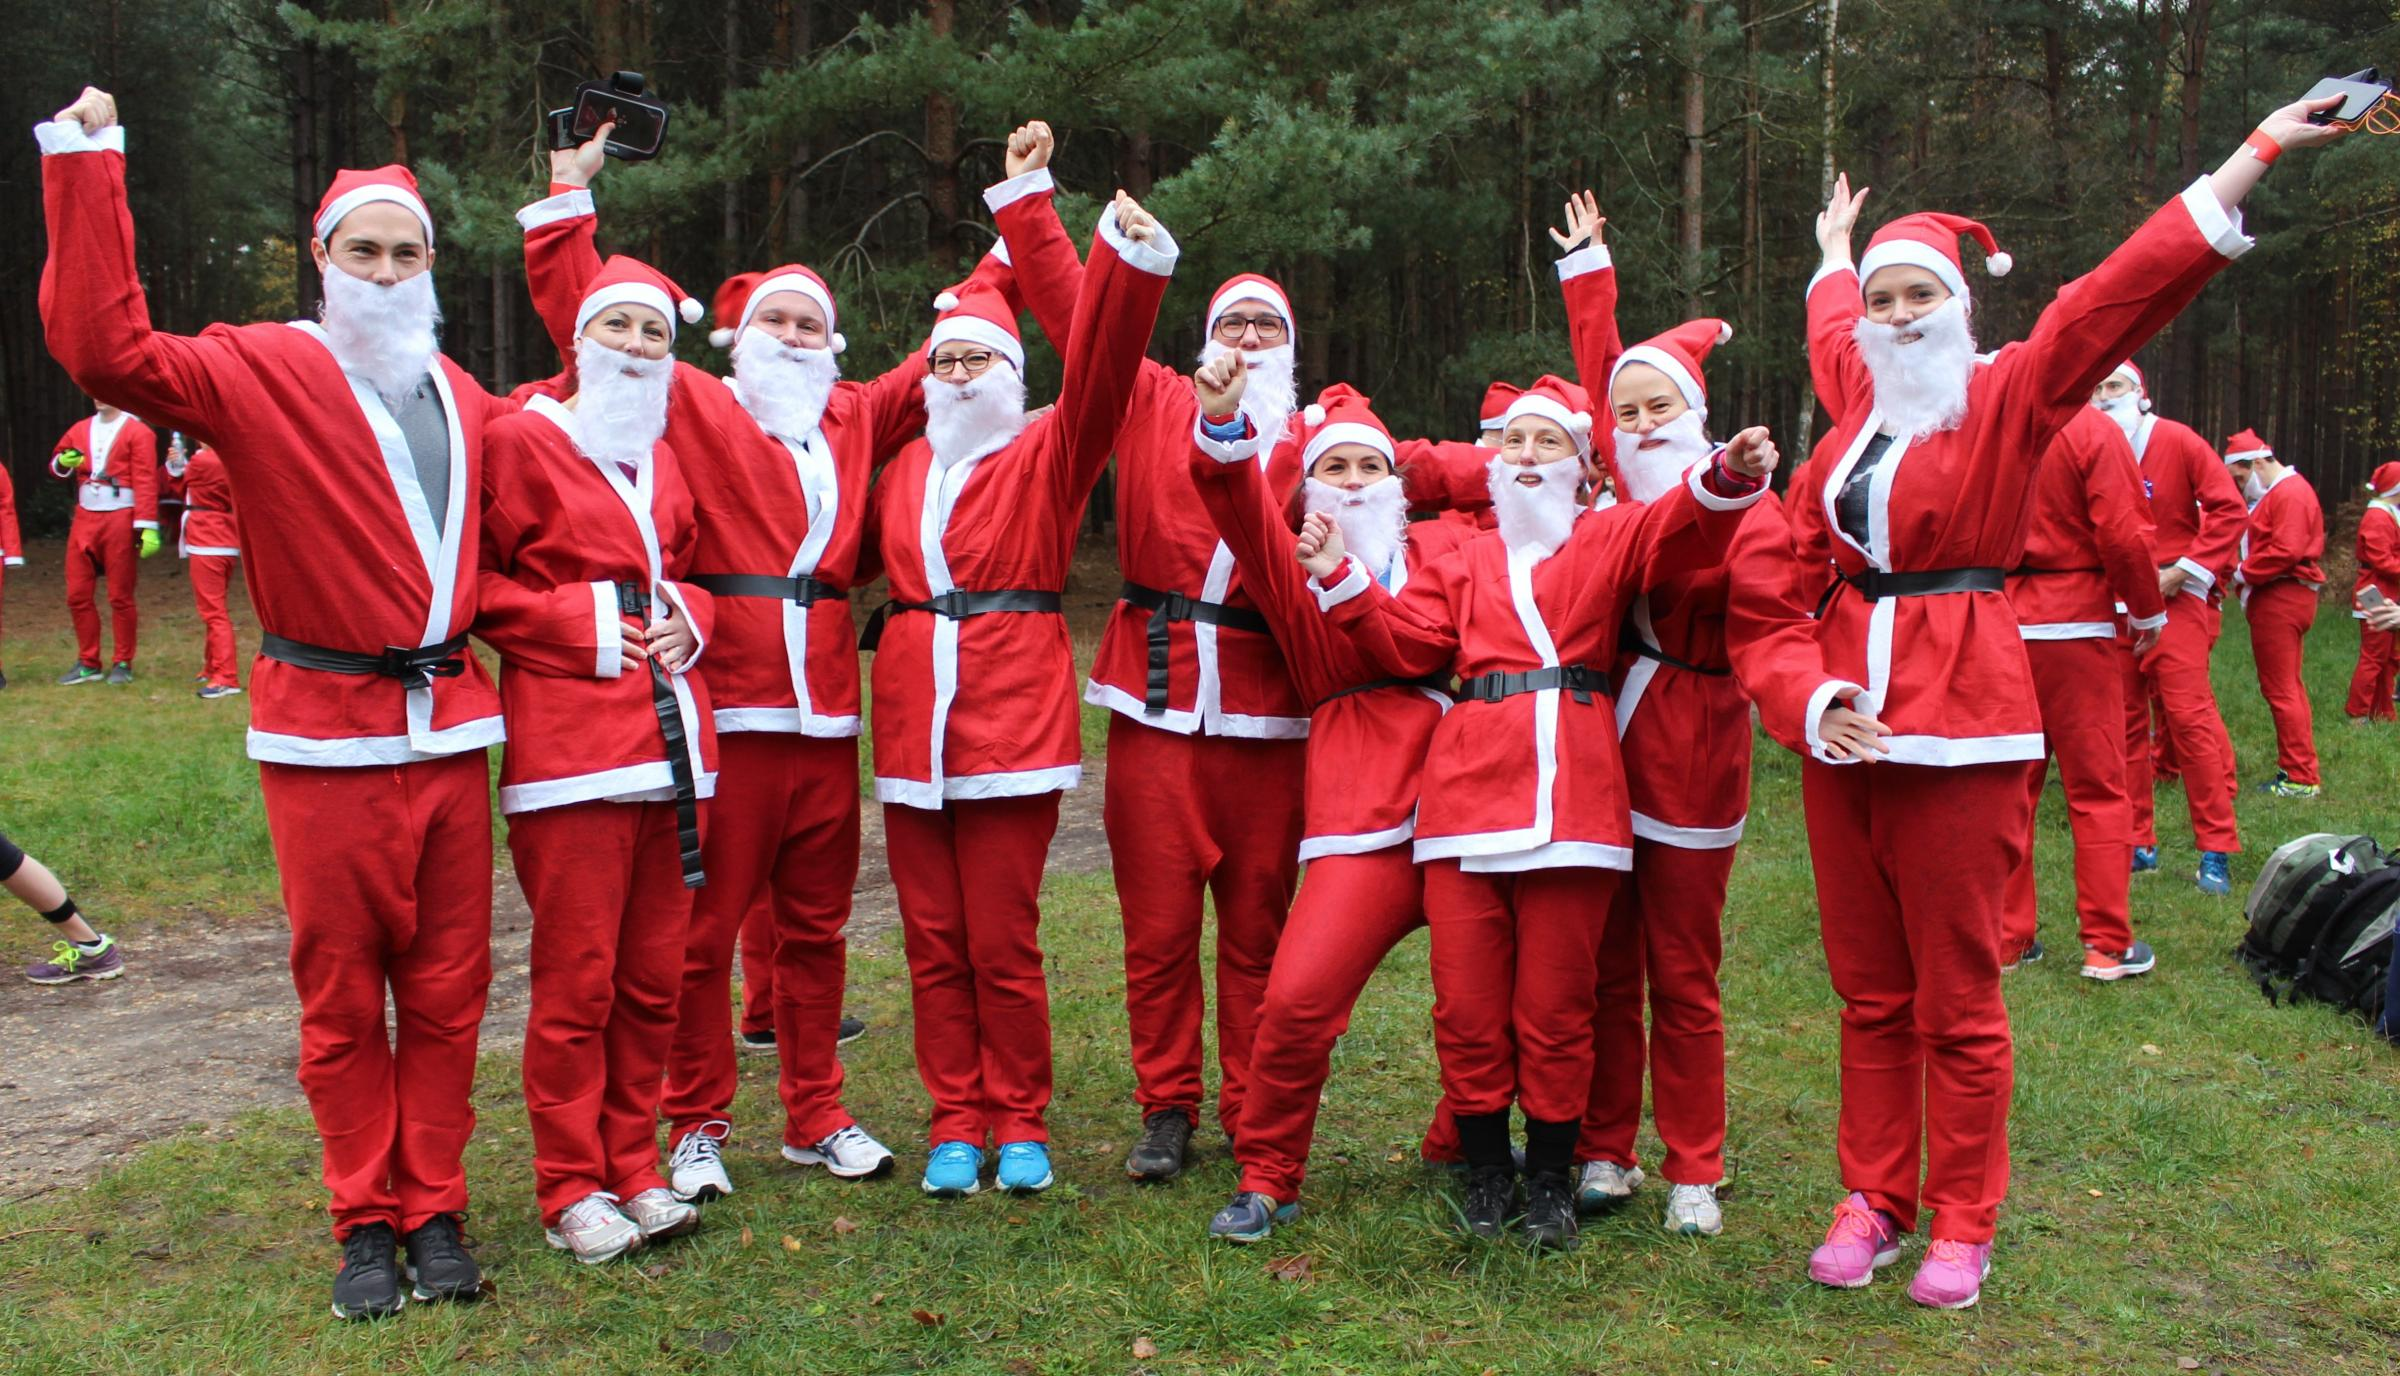 Waitrose staff dressed to take part in the Santa Dash